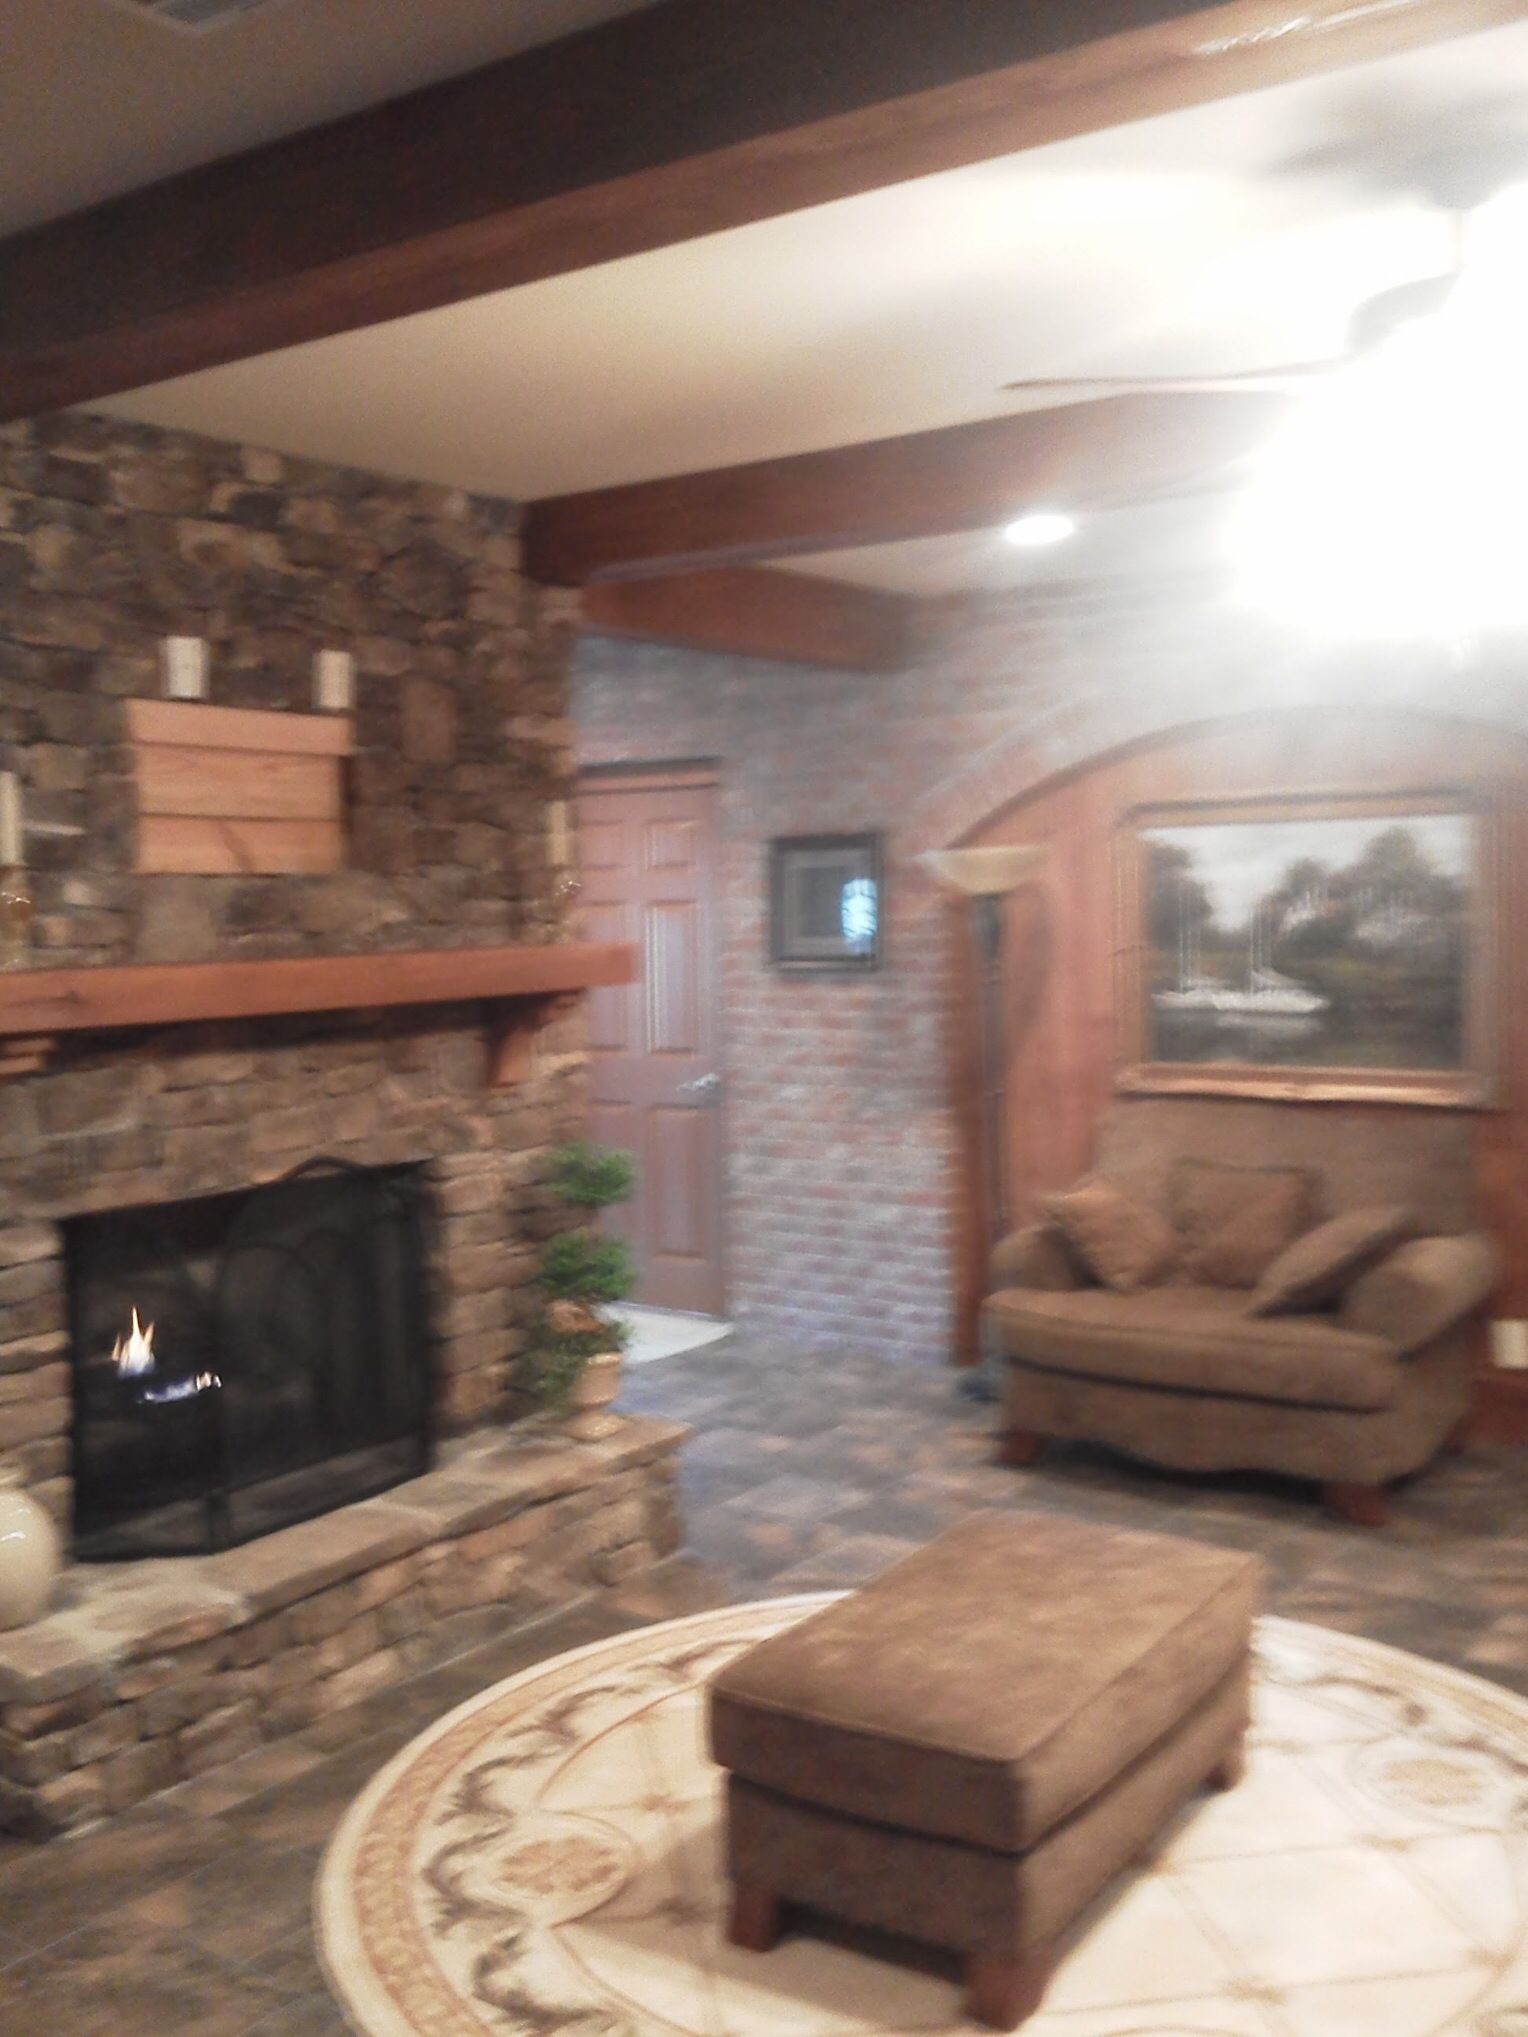 S&P Masonry #fireplace #stonework #stone #brickwork #mason #brickarches